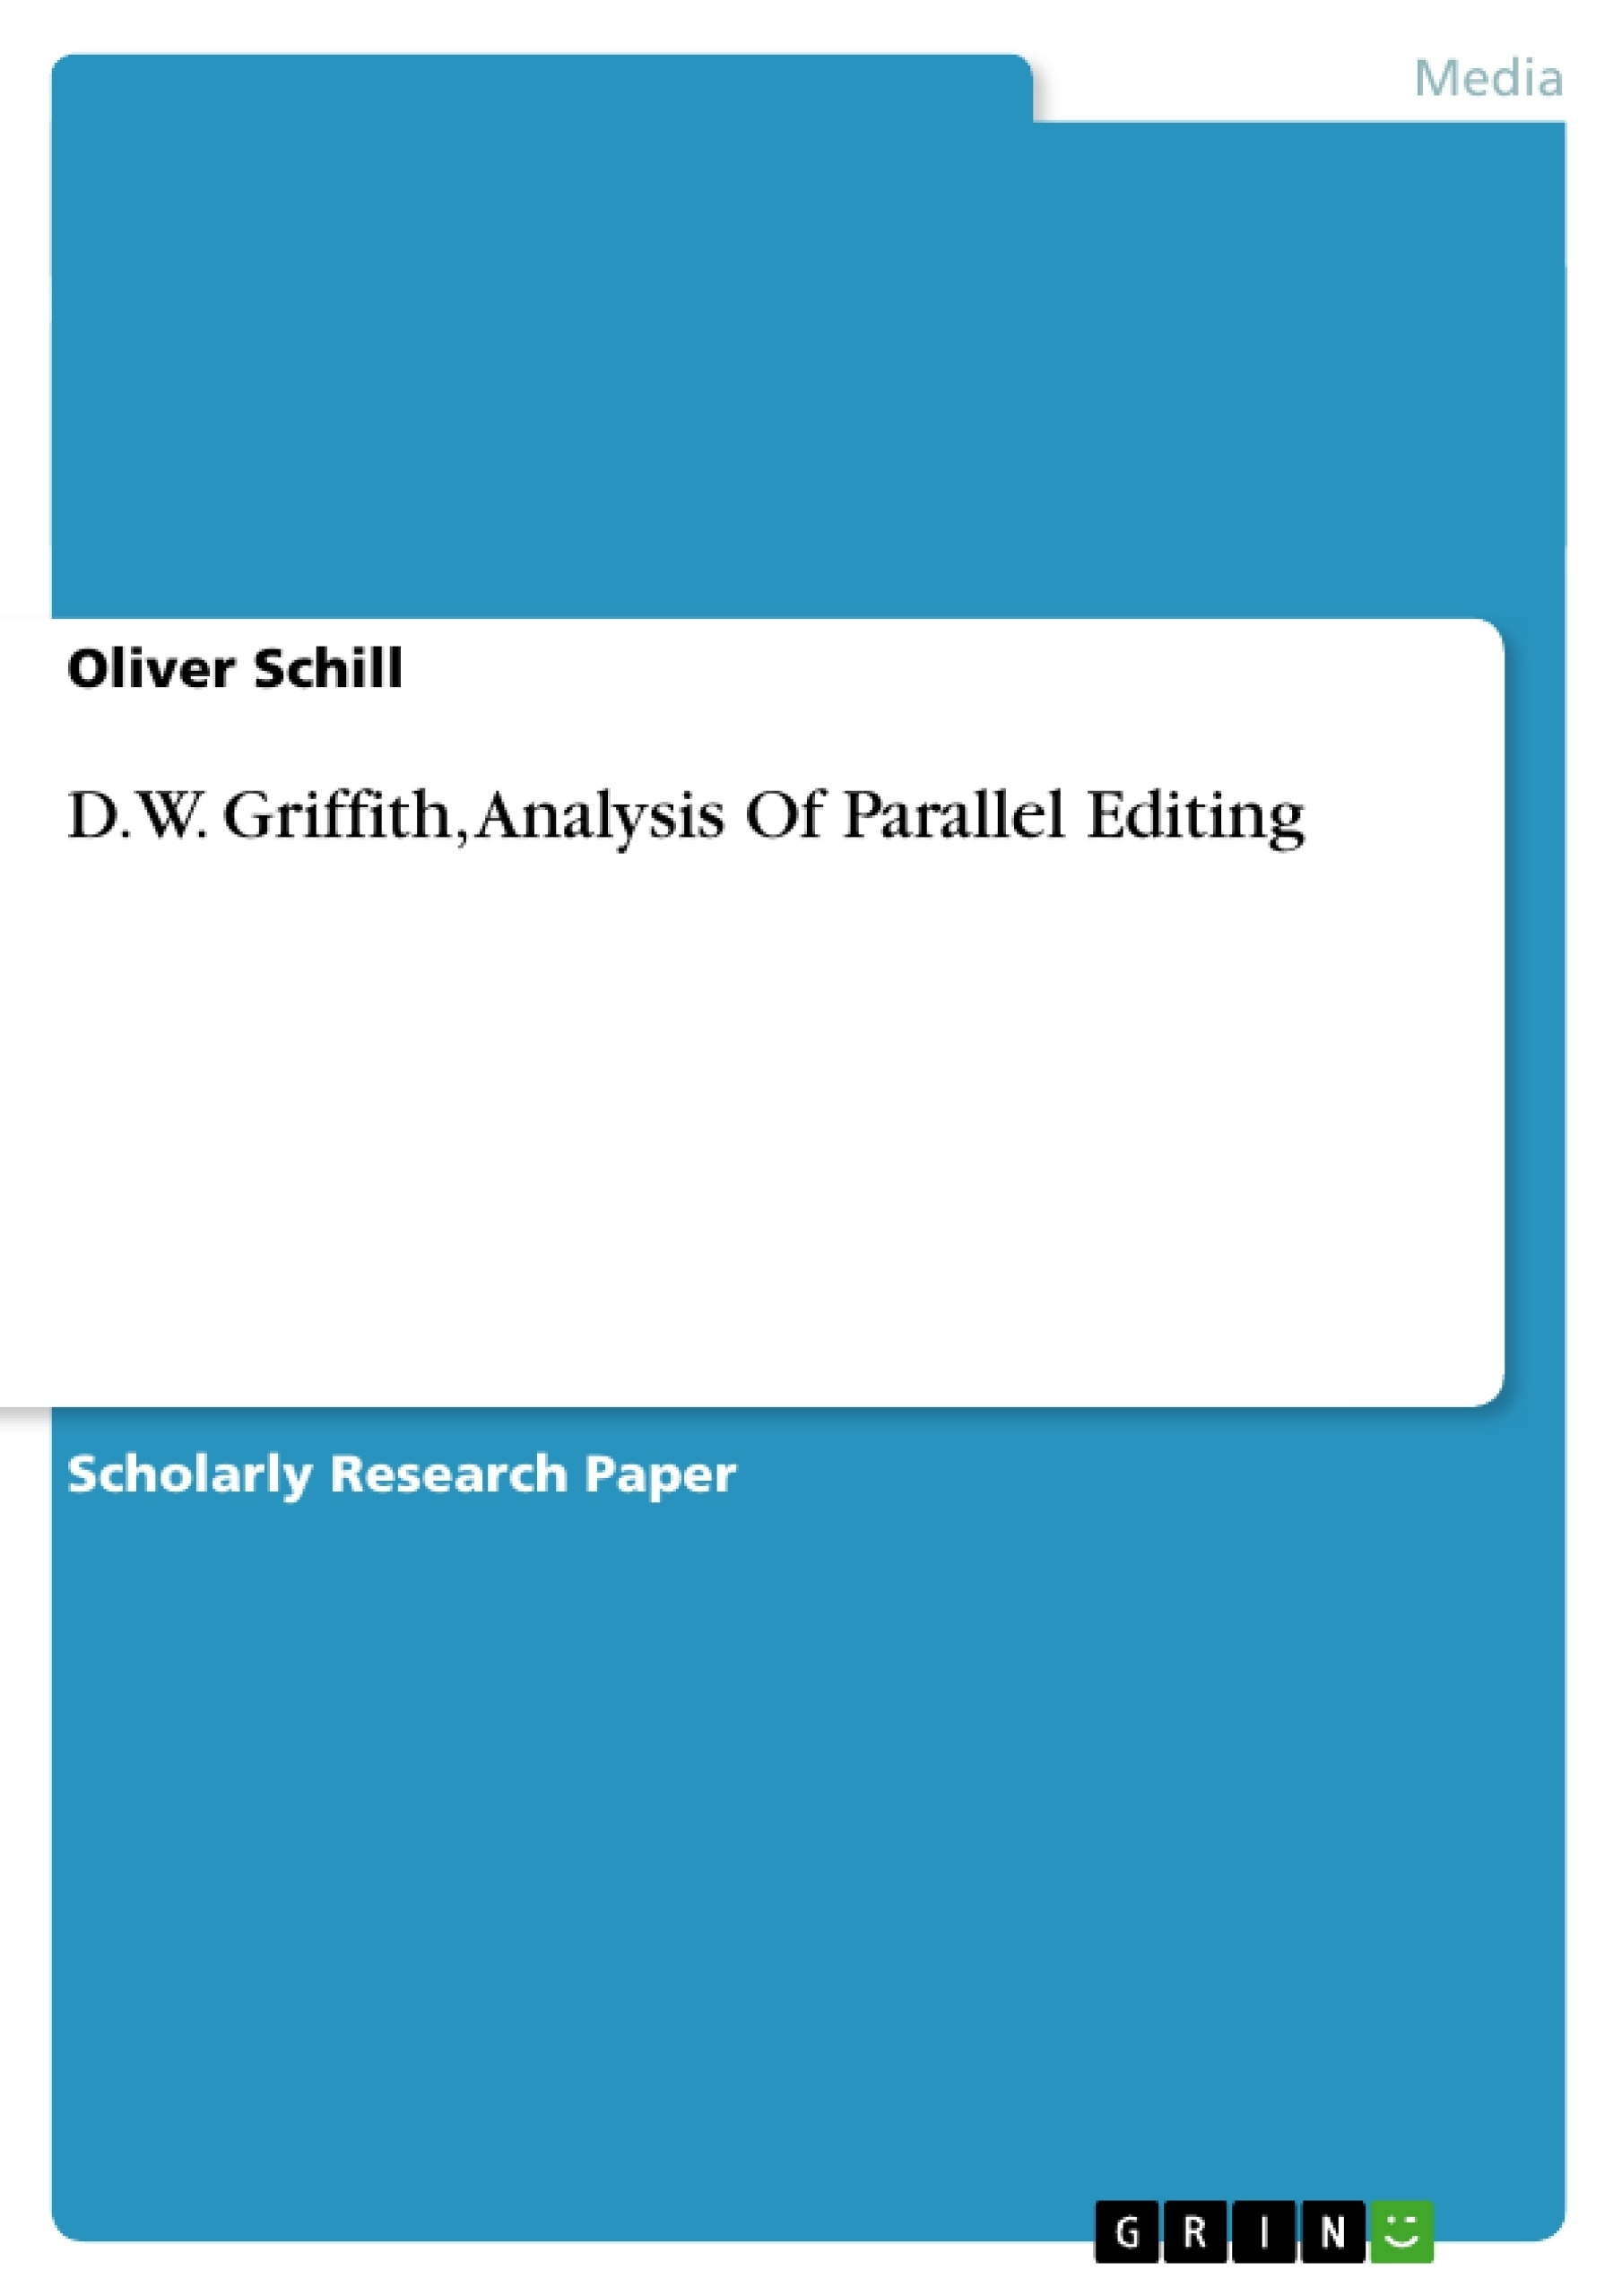 Title: D.W. Griffith, Analysis Of Parallel Editing